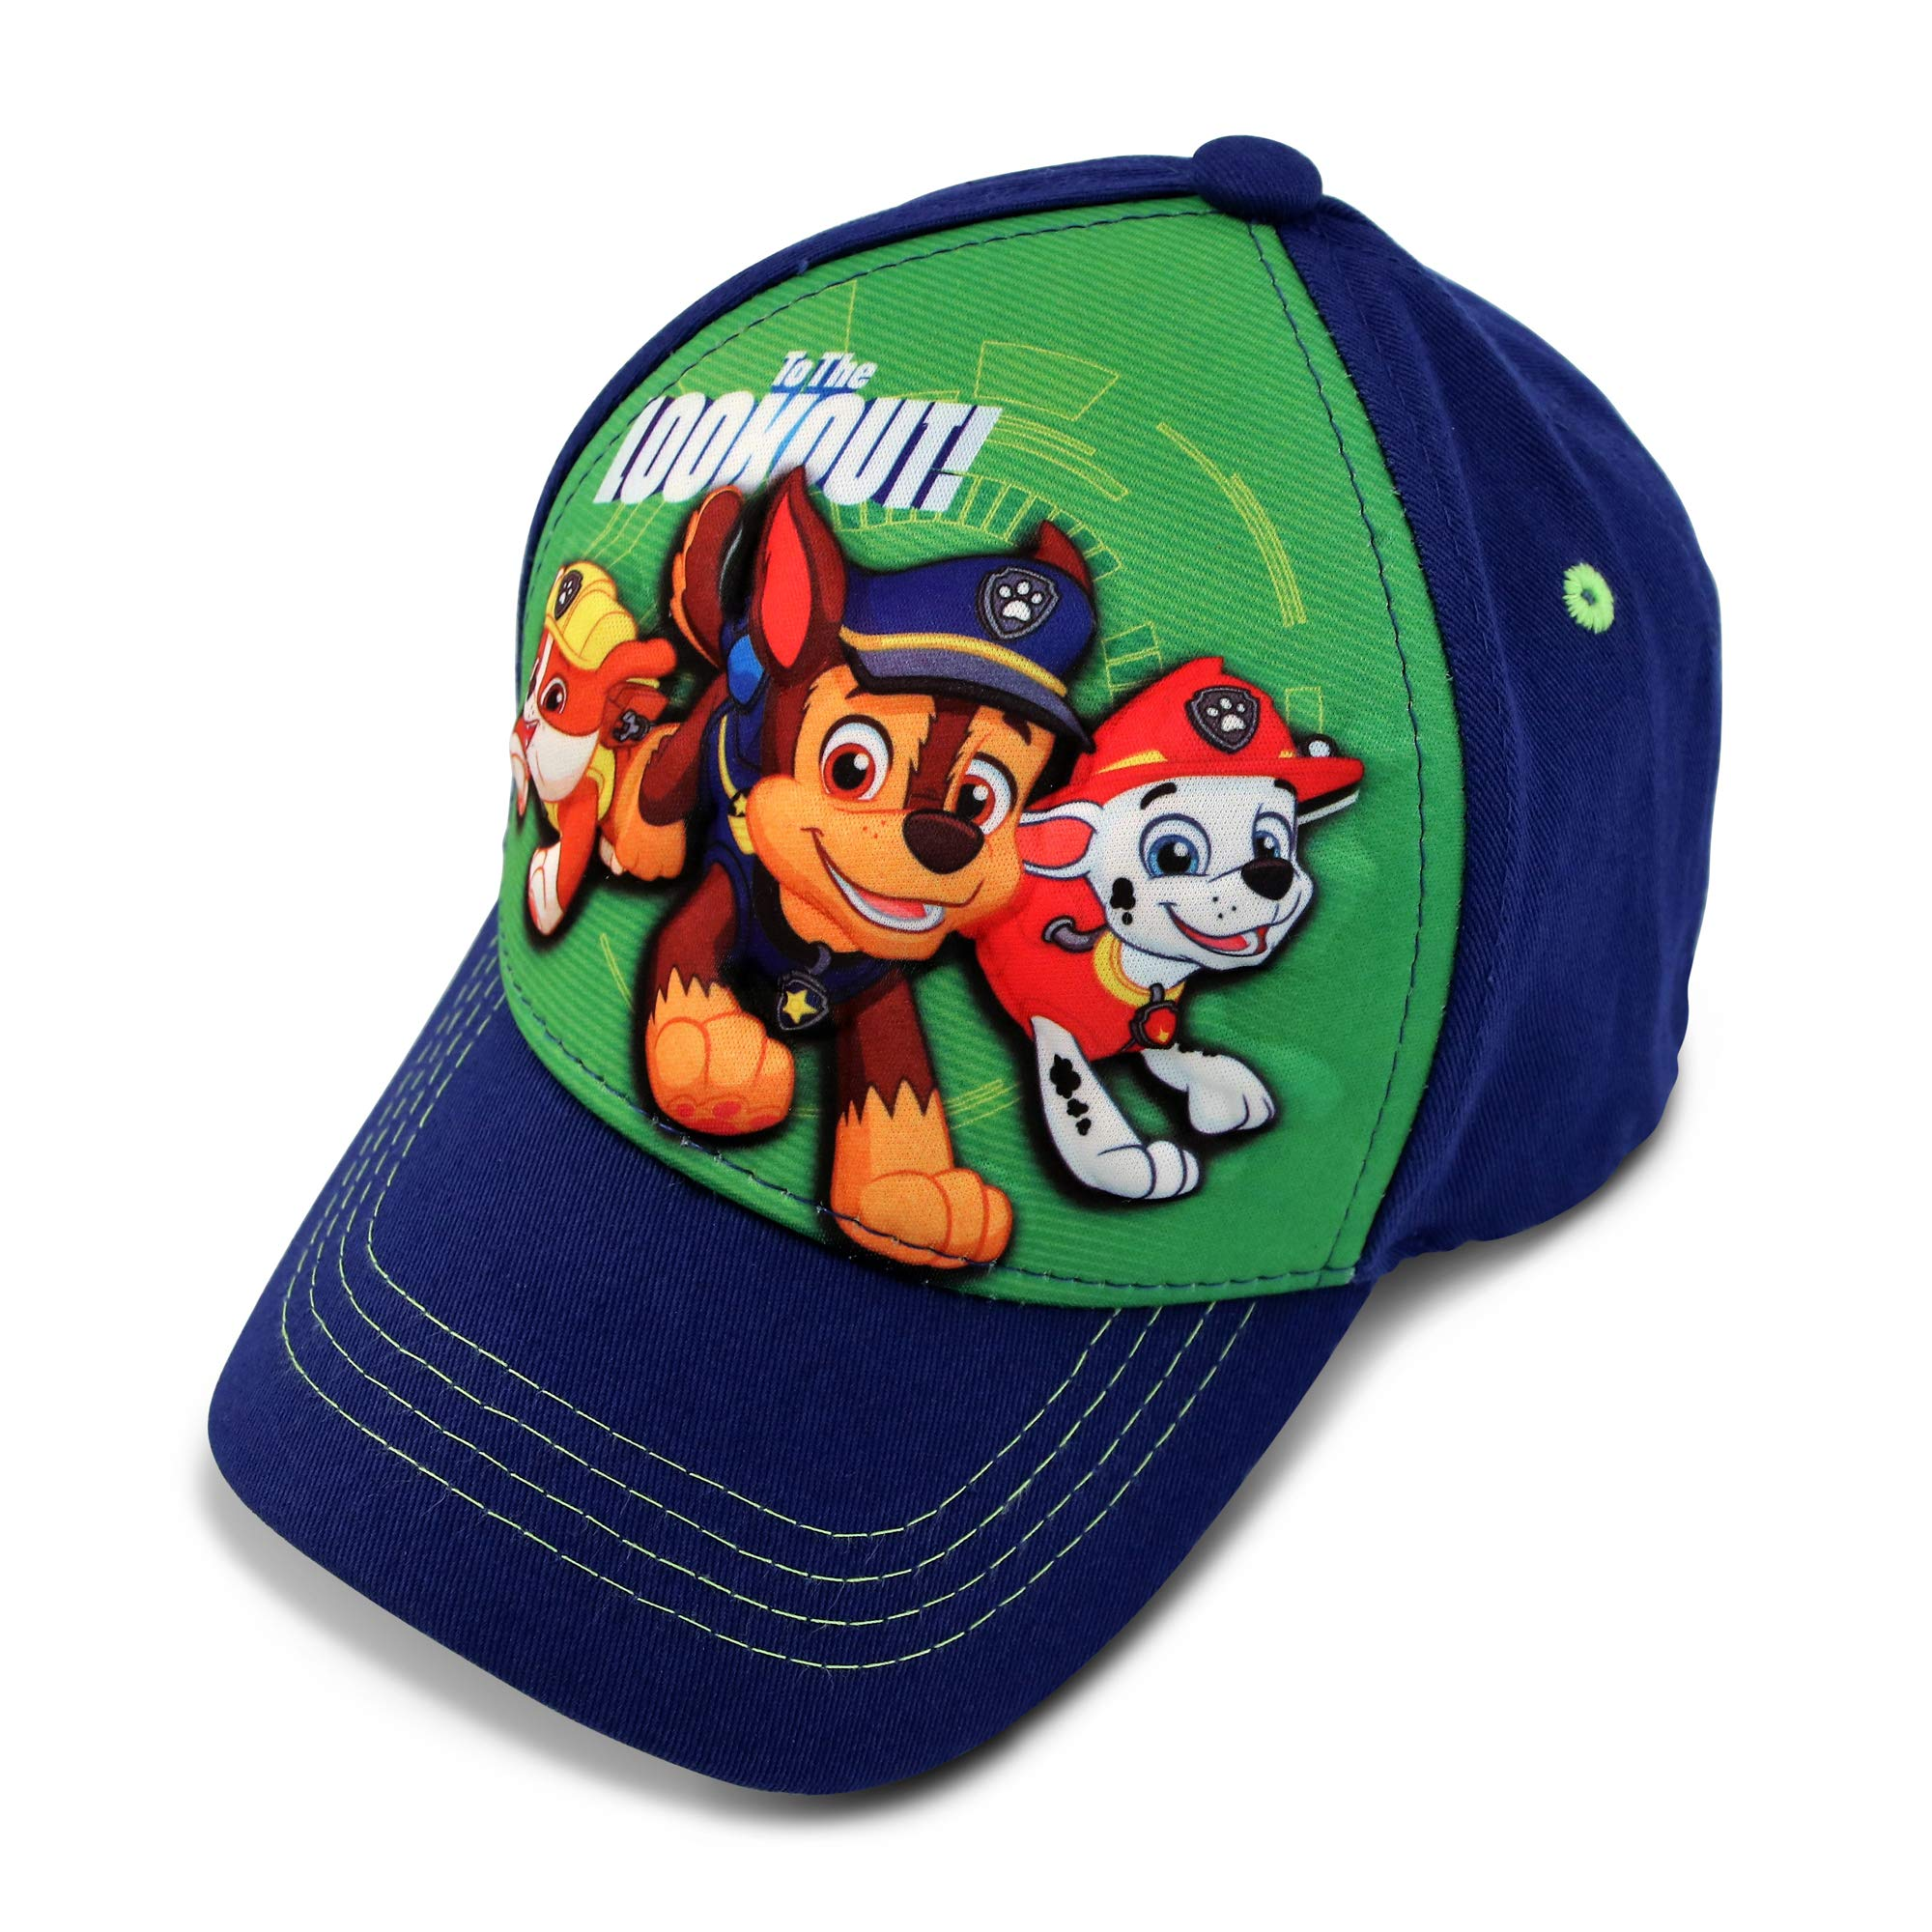 Nickelodeon Boys' Toddler Paw Patrol Character 3D Pop Baseball Cap, Blue/Green, Age 2-4 by Nickelodeon